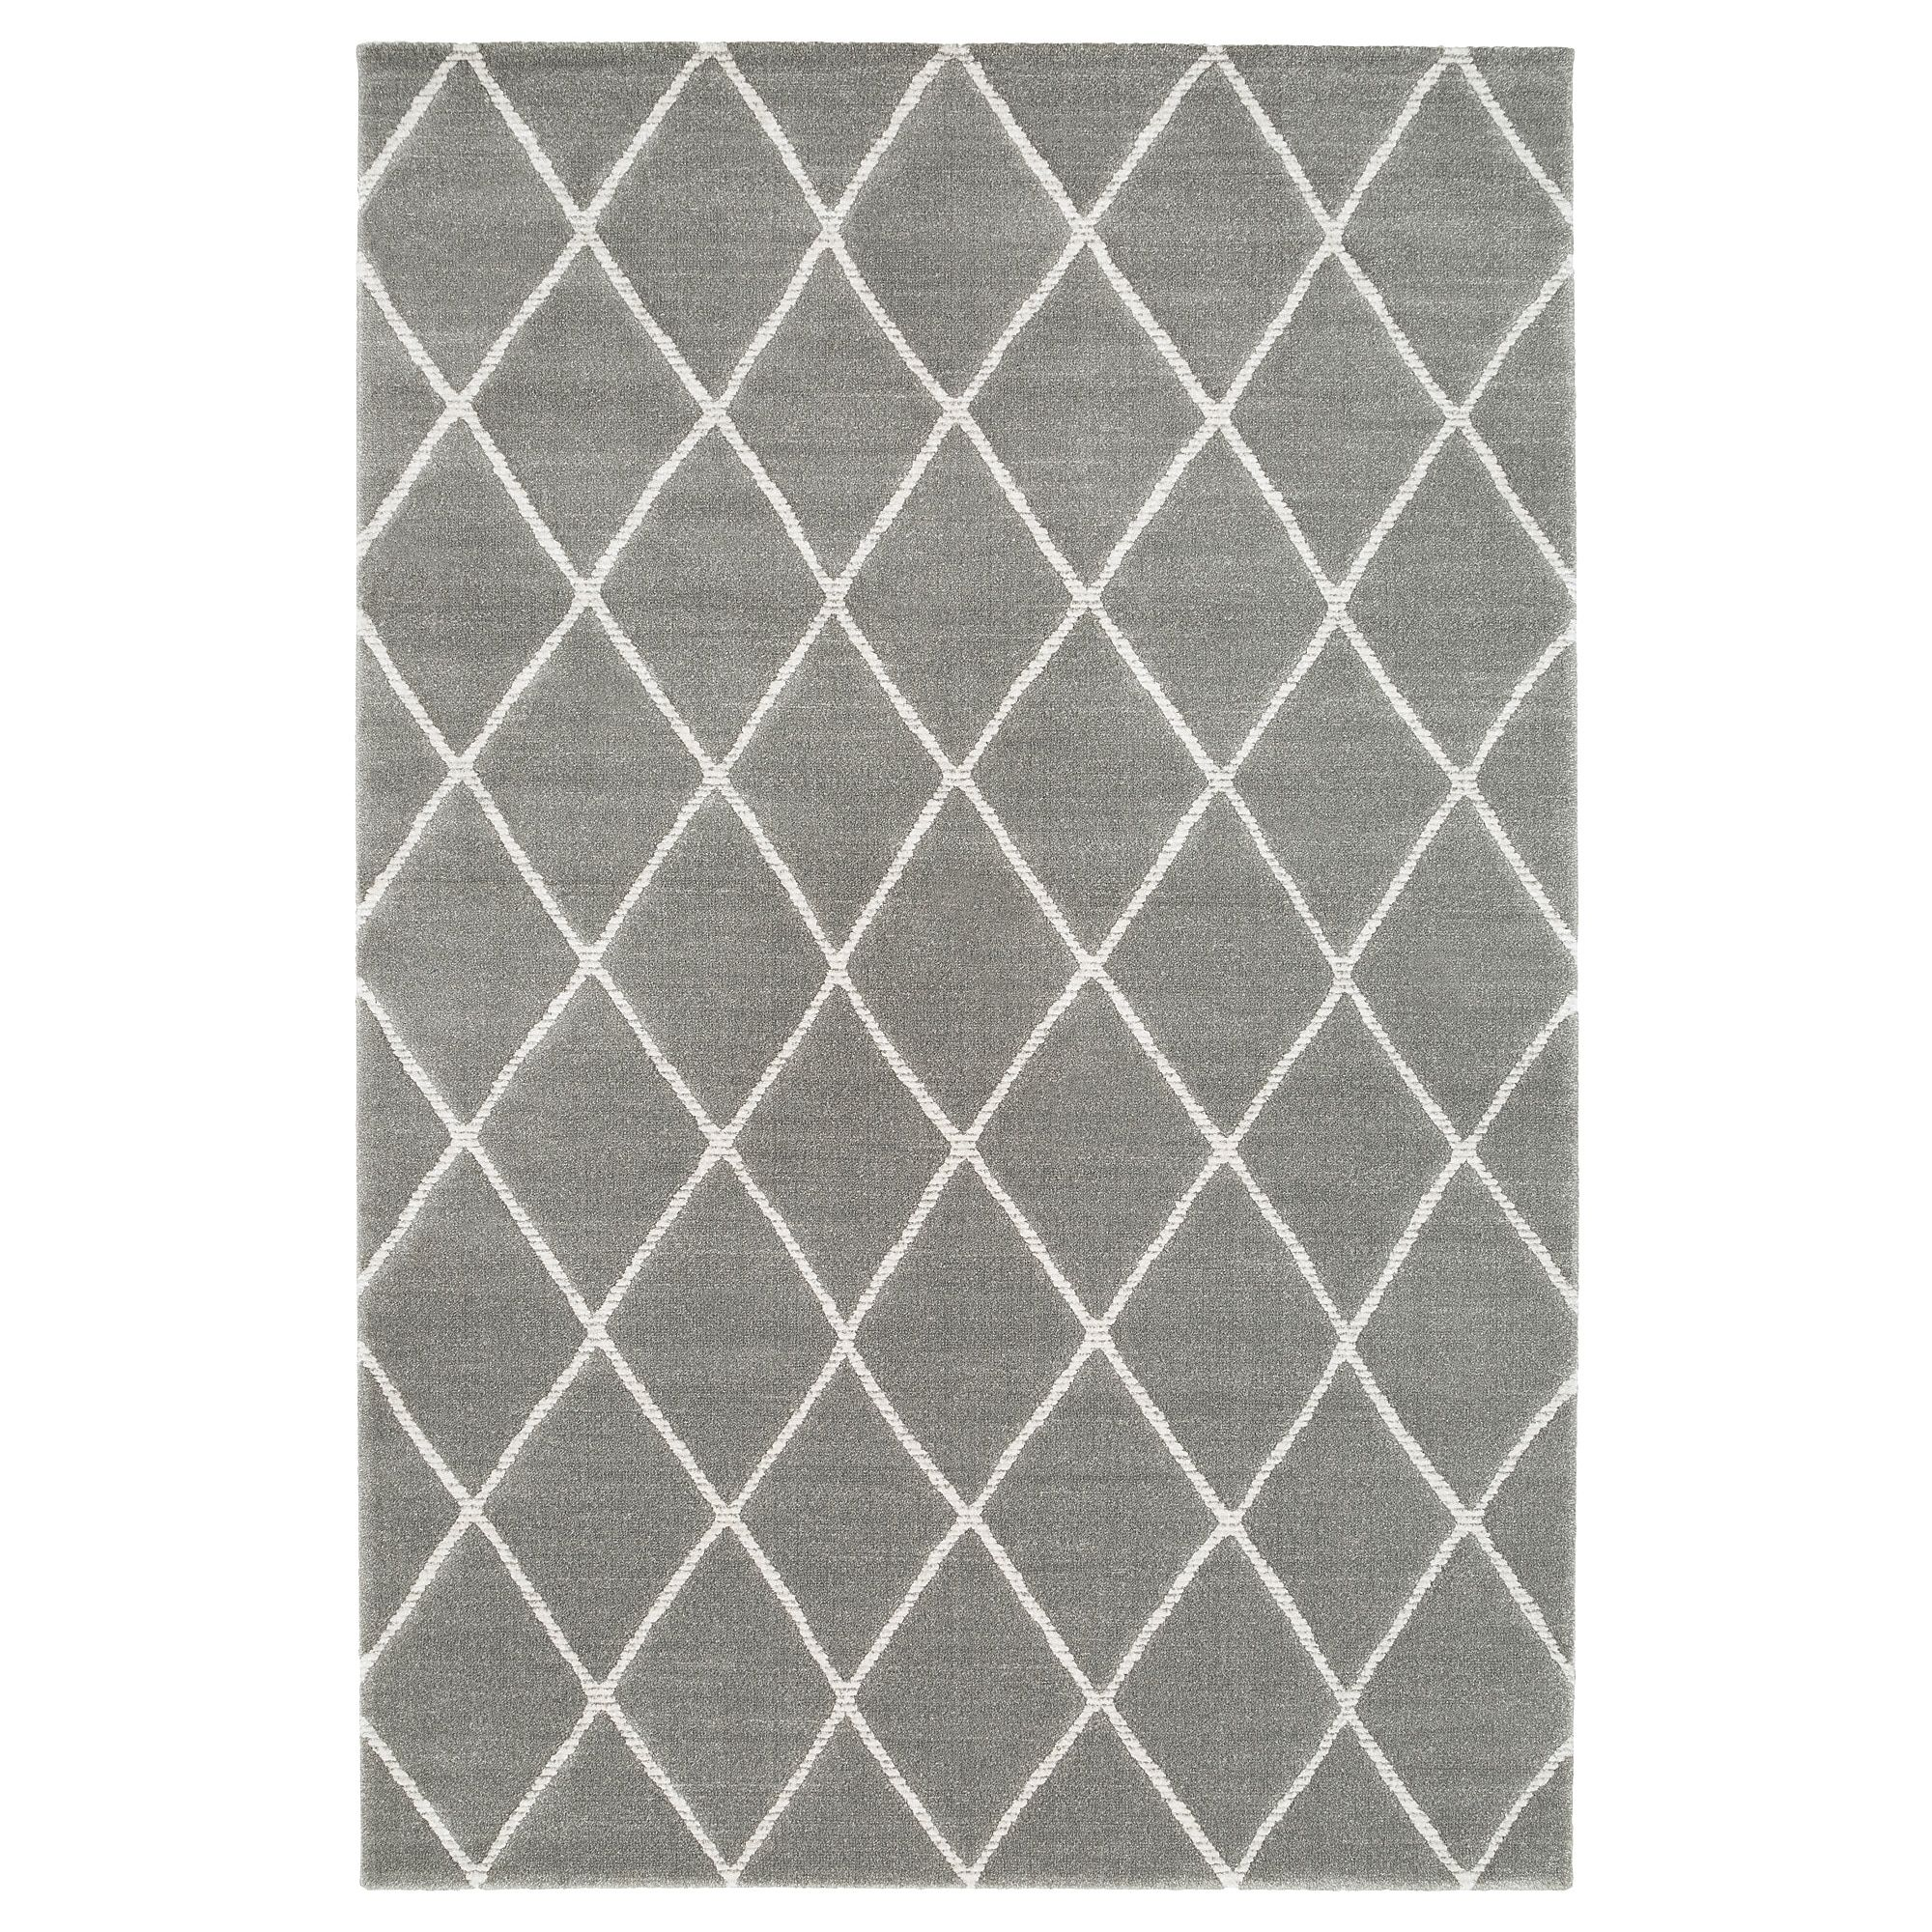 Kyndby Rug Low Pile Gray Antique Look Floral Patterned 6 7 X9 10 Ikea Ikea Area Rugs Rugs Medium Rugs